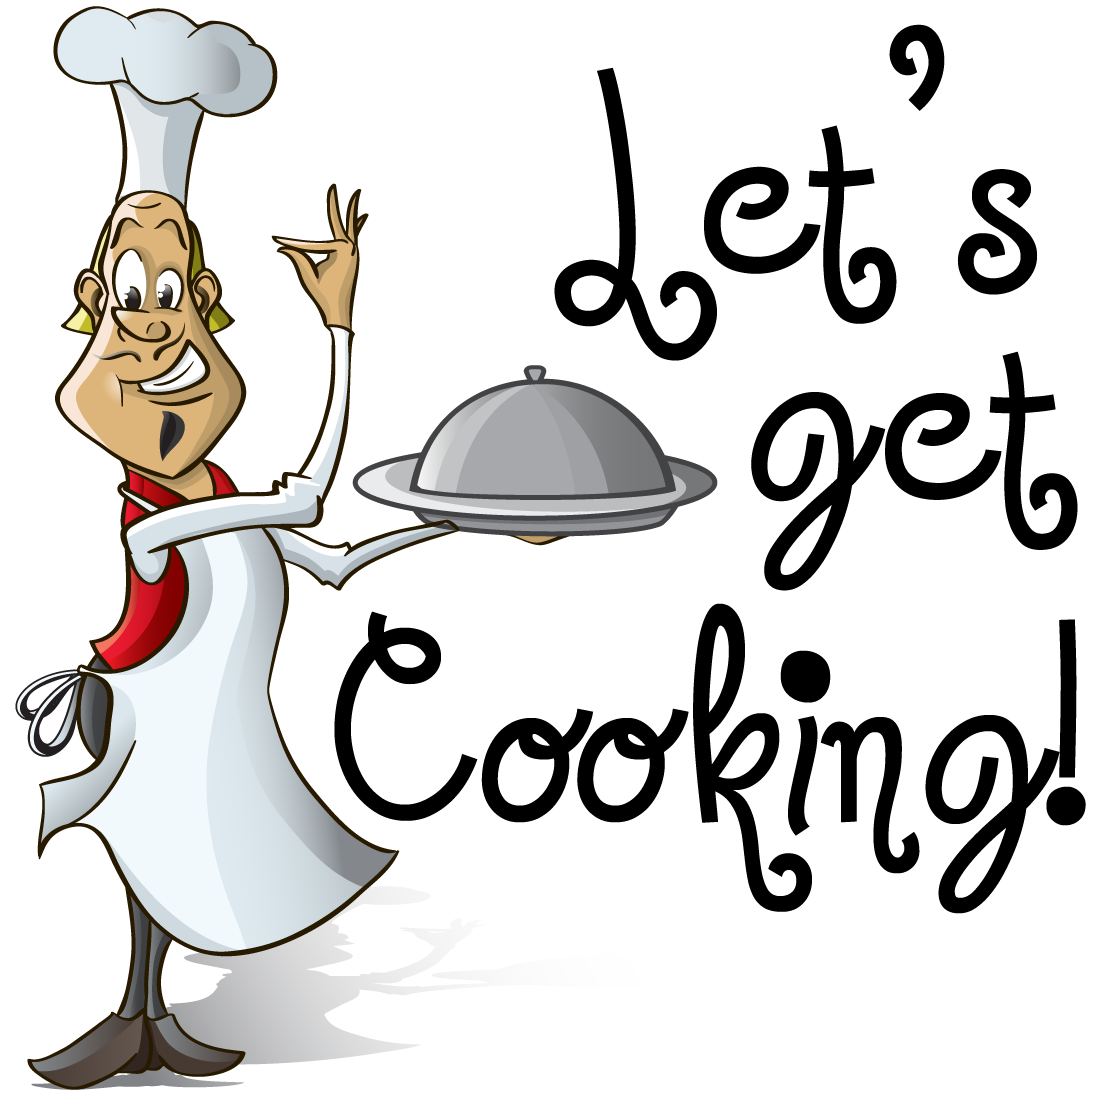 Cookbook clipart cooking vessel.  collection of images